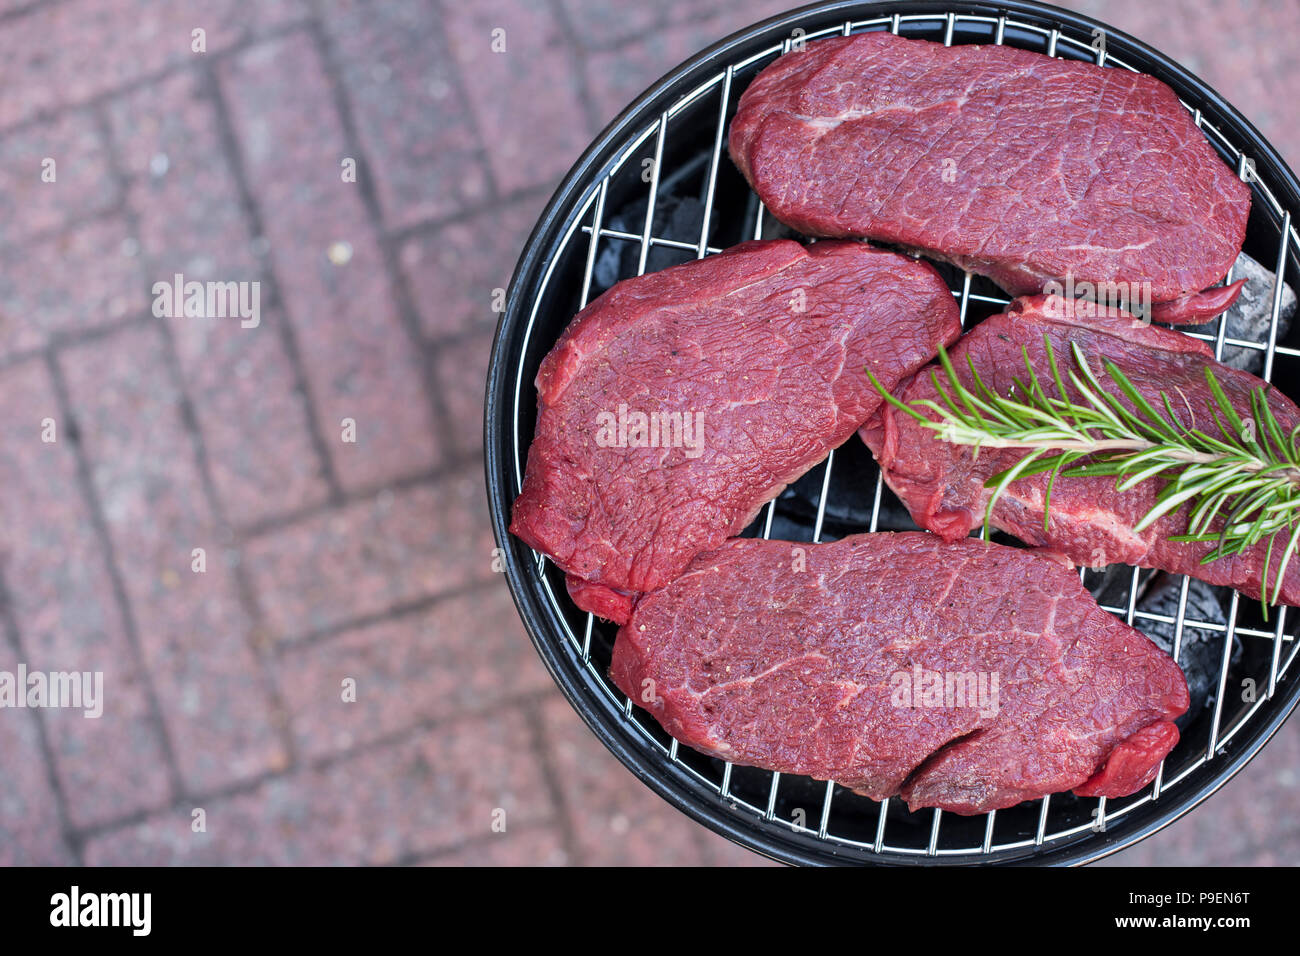 An open brazier for cooking meat. Copy space - Stock Image